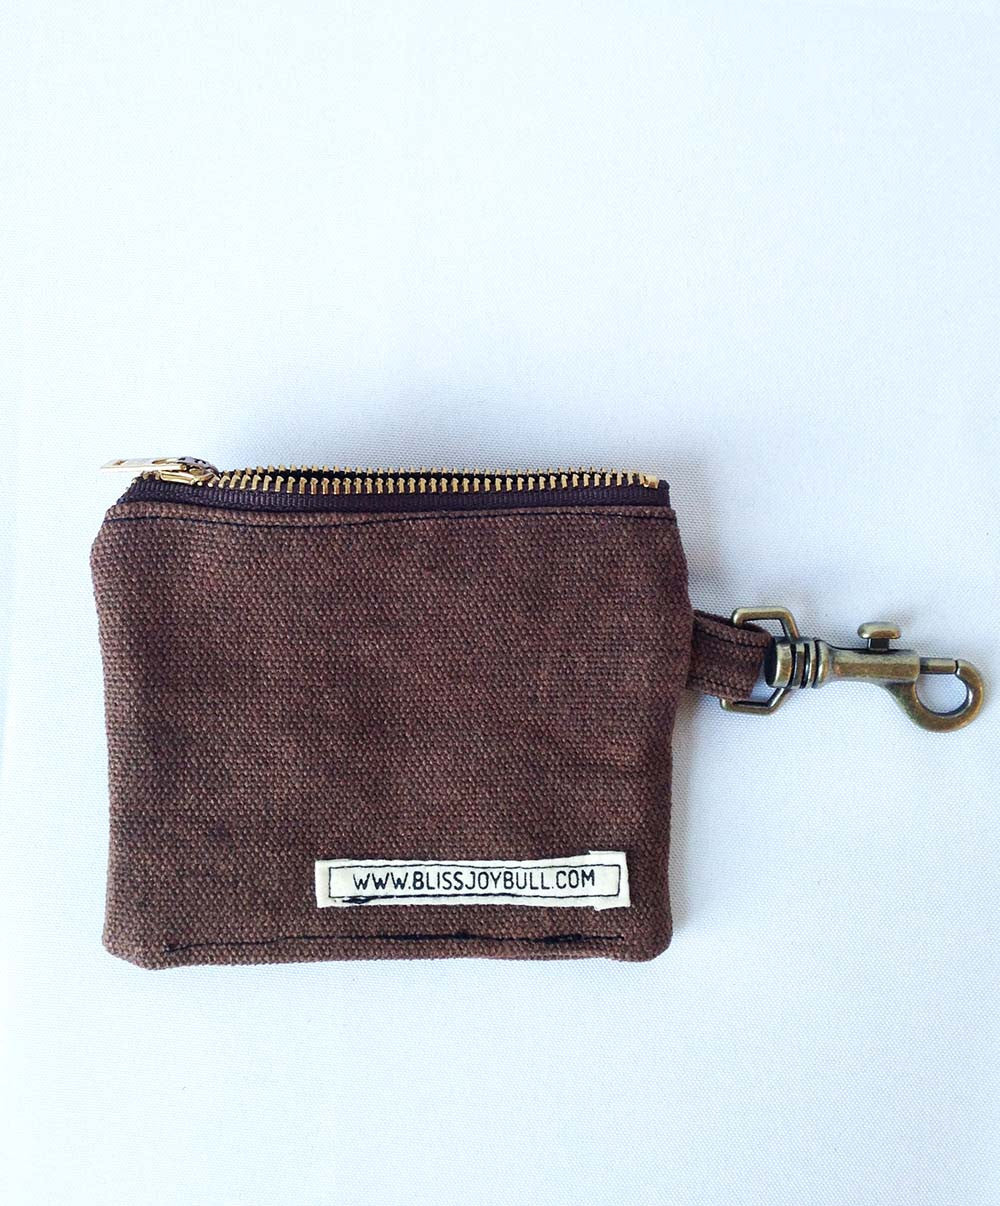 Back of wallet shows an open zipper at top, lobster claw clip at right side. Cotton label on bottom right of wallet reads www.blissjoybull.com